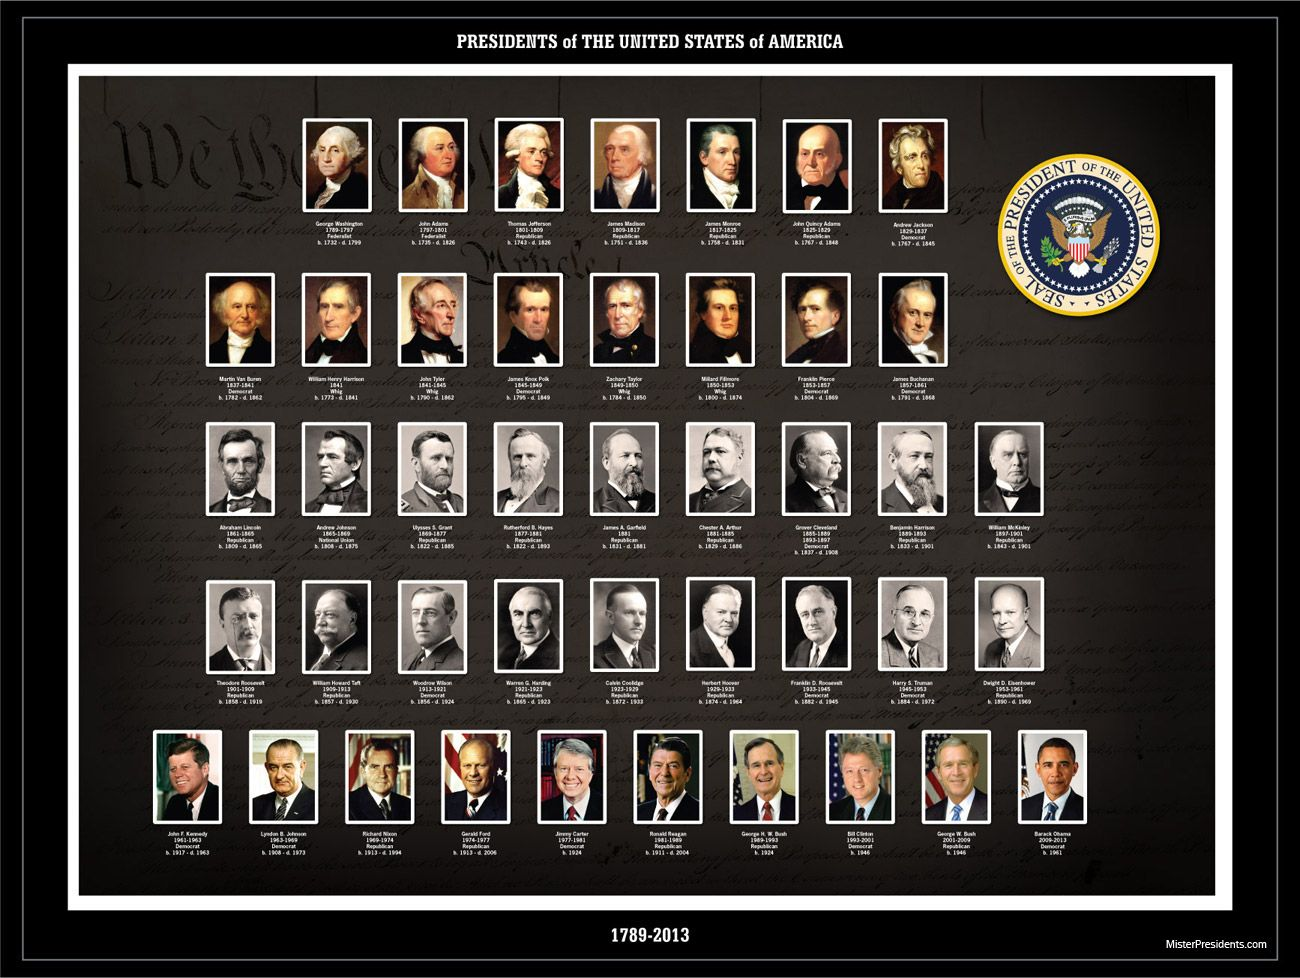 List Of Uspresidents Including Family Genealogy Firstla S And More The President Of The